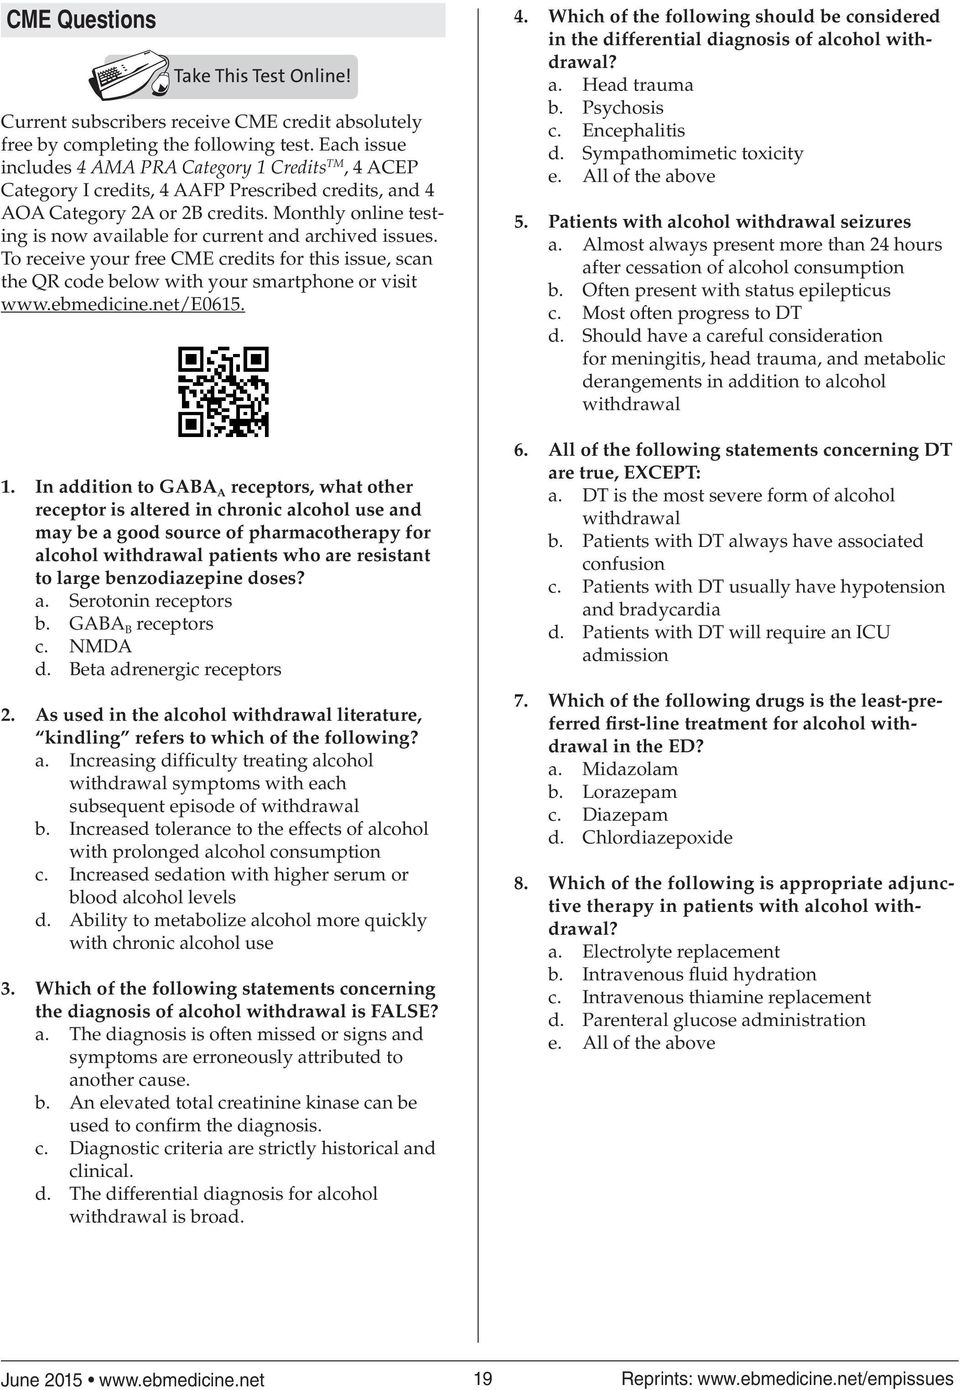 Monthly online testing is now available for current and archived issues. To receive your free CME credits for this issue, scan the QR code below with your smartphone or visit www.ebmedicine.net/e0615.